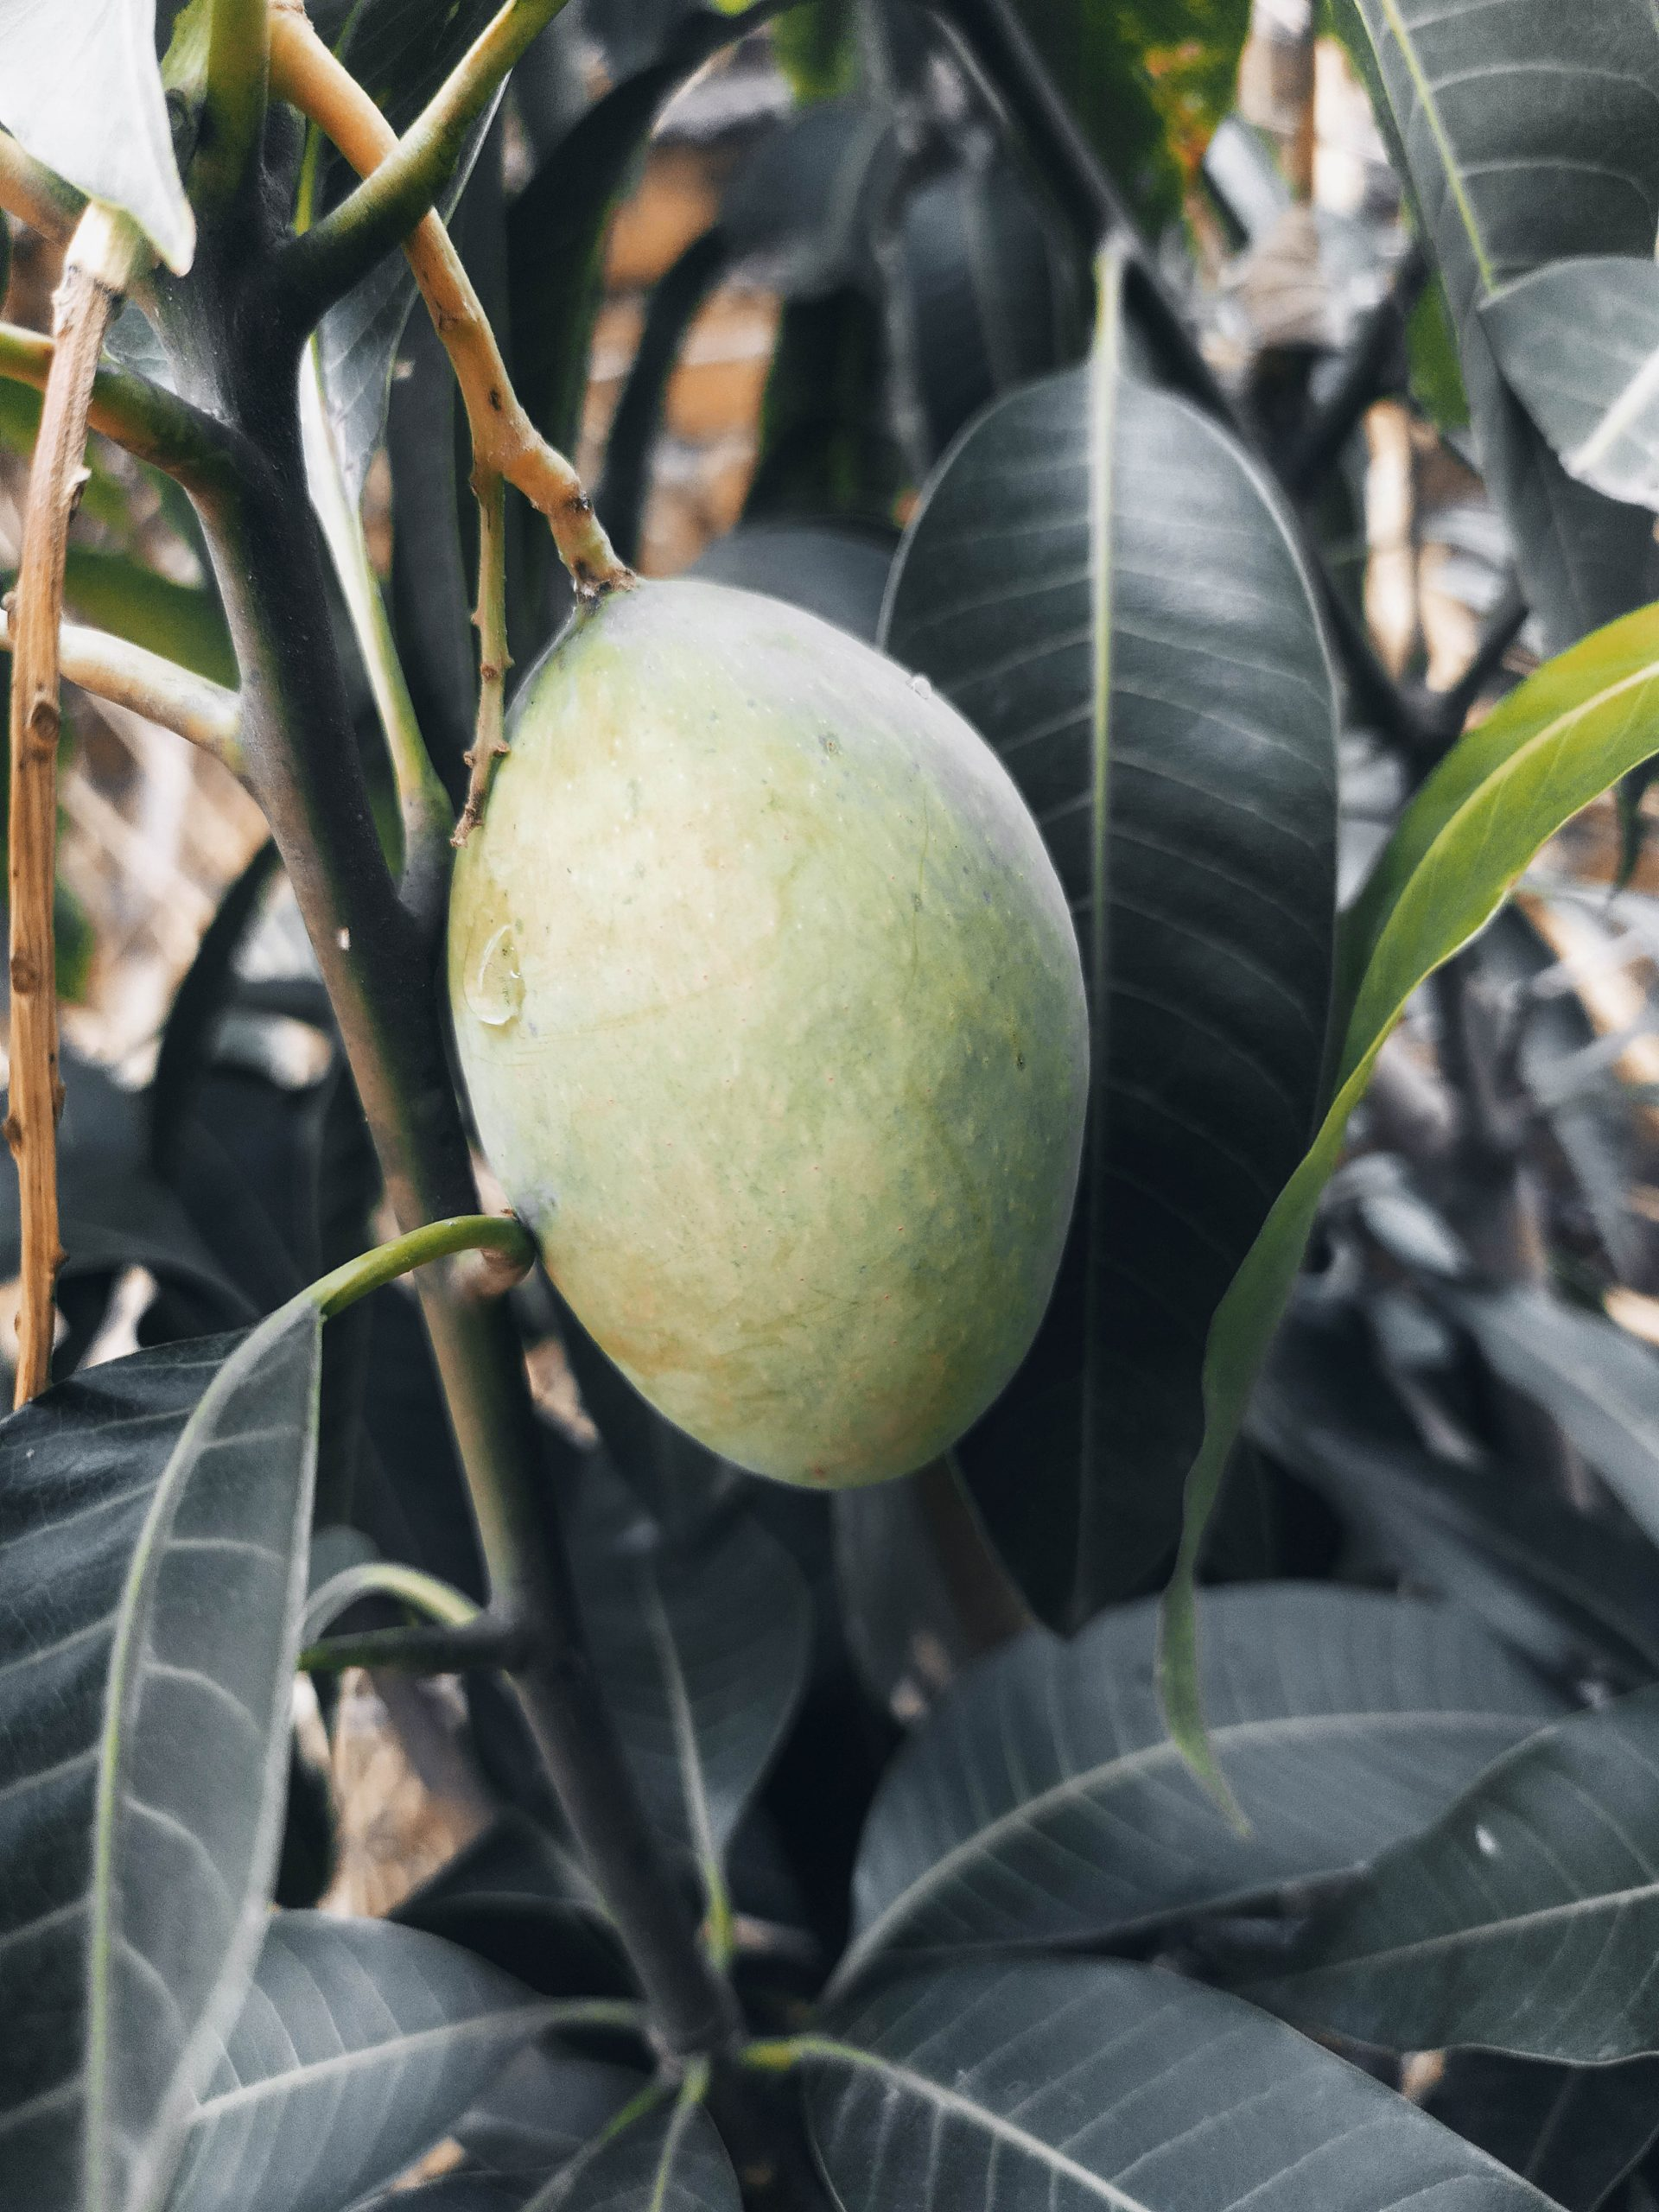 Mango hanging on plant